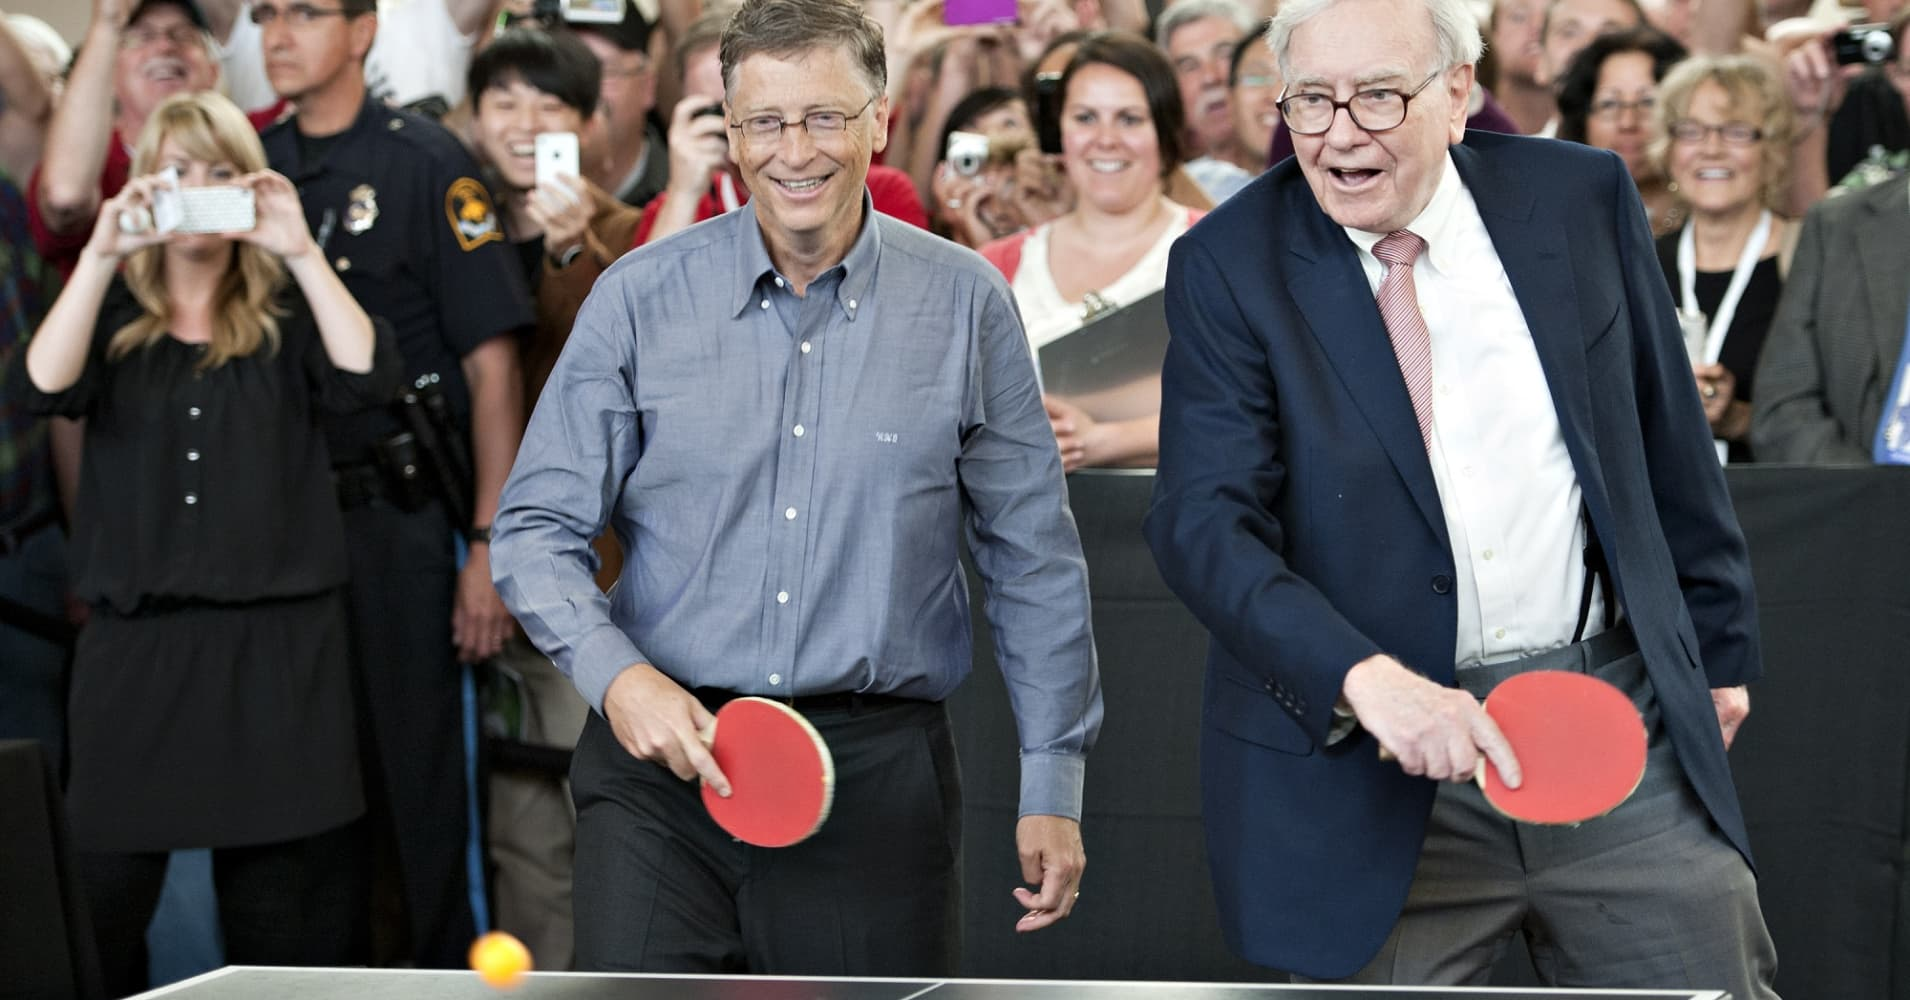 bill gates and warren buffett Osberg parlayed a gift for the game into a series of business opportunities and high-powered elephant bumping that includes warren buffett and bill gates, billionaires whose net worths clock.